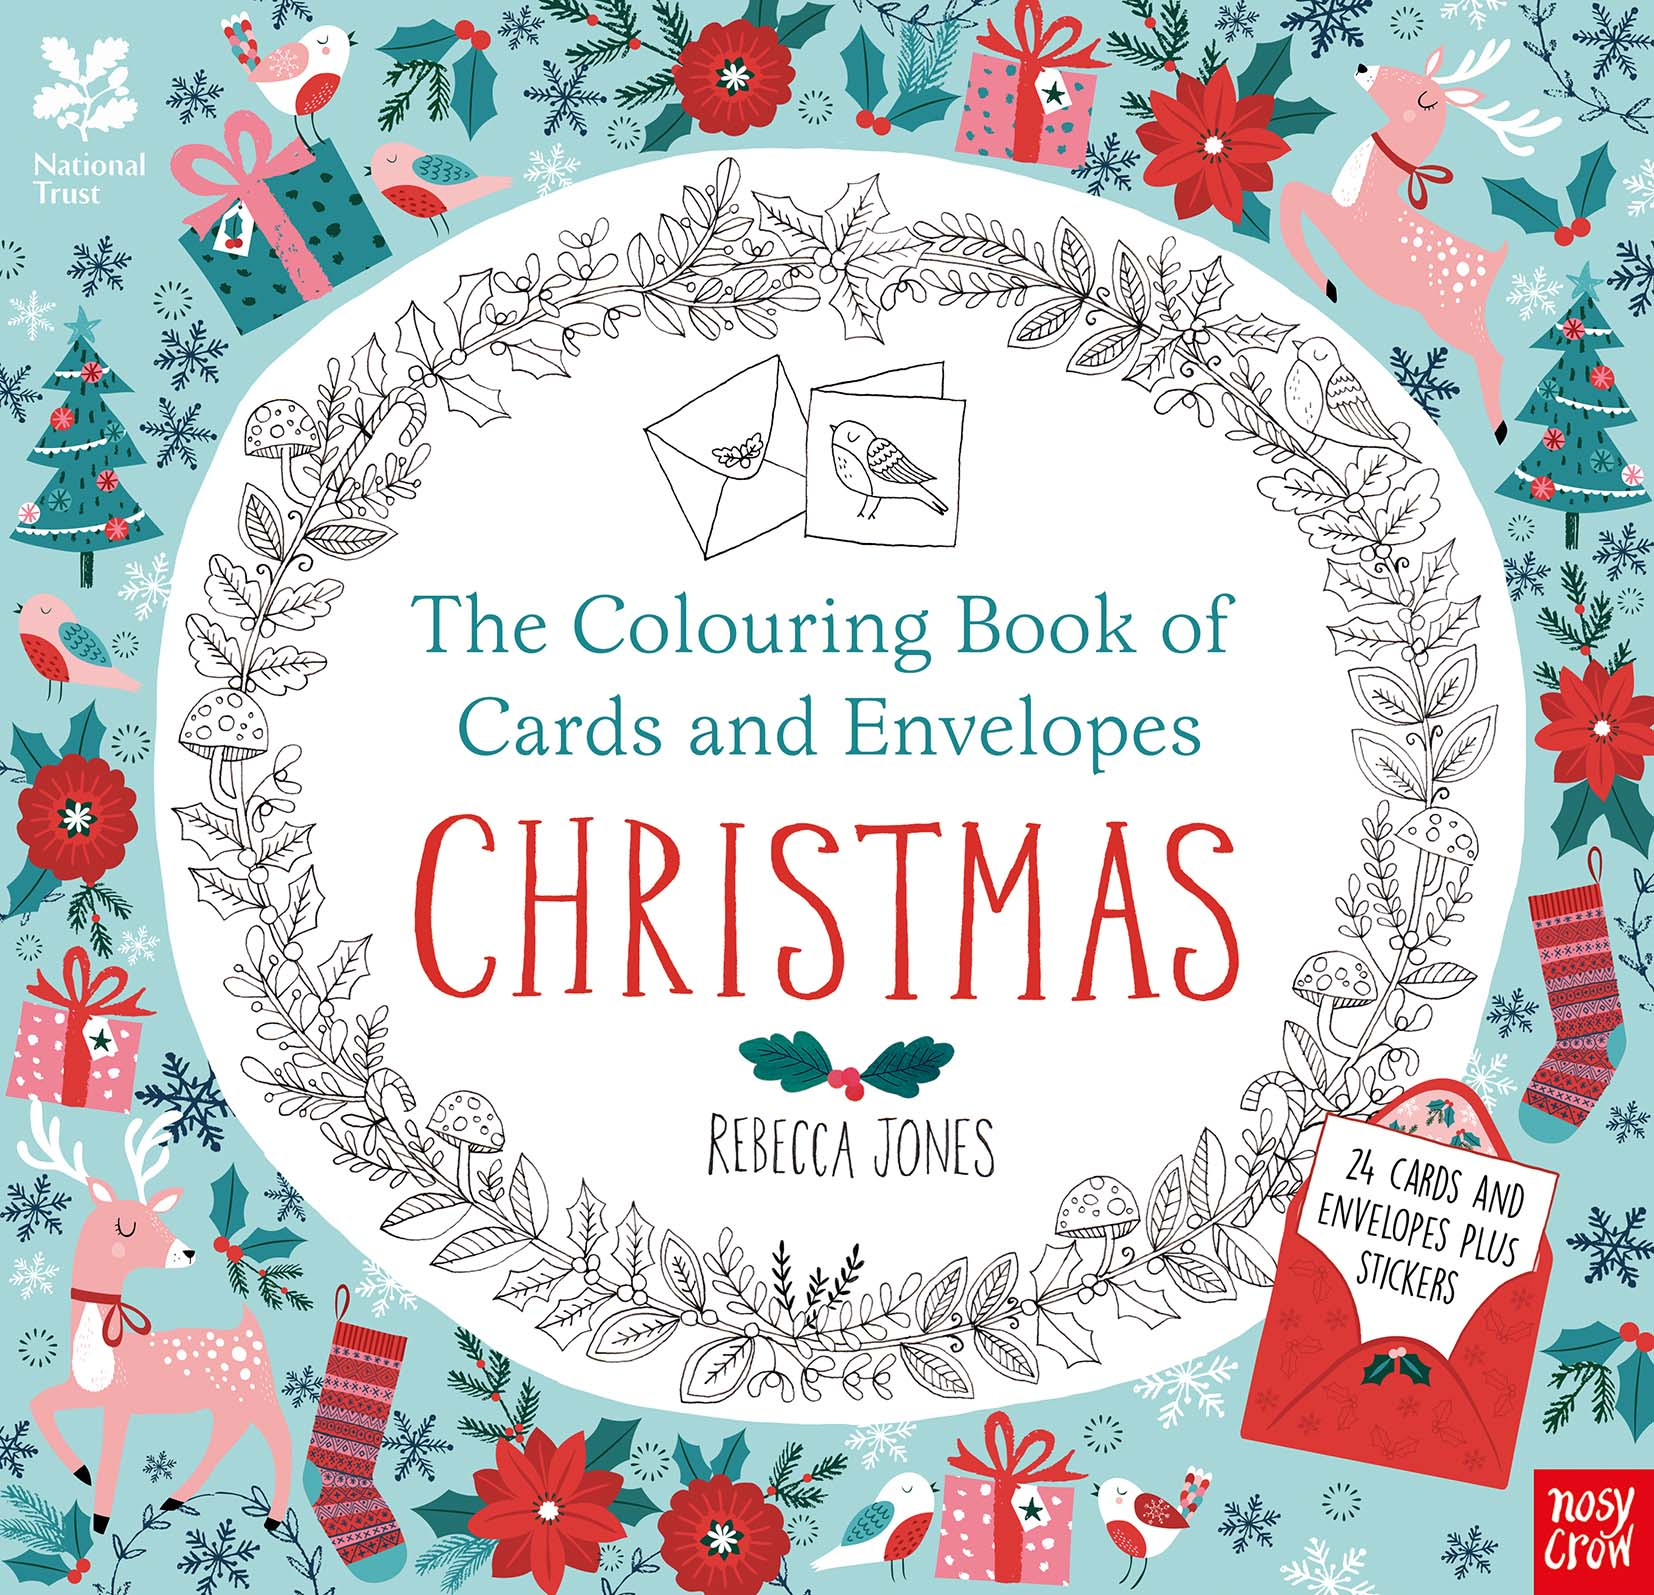 Christmas Coloring Cards Pdf With National Trust The Colouring Book Of And Envelopes